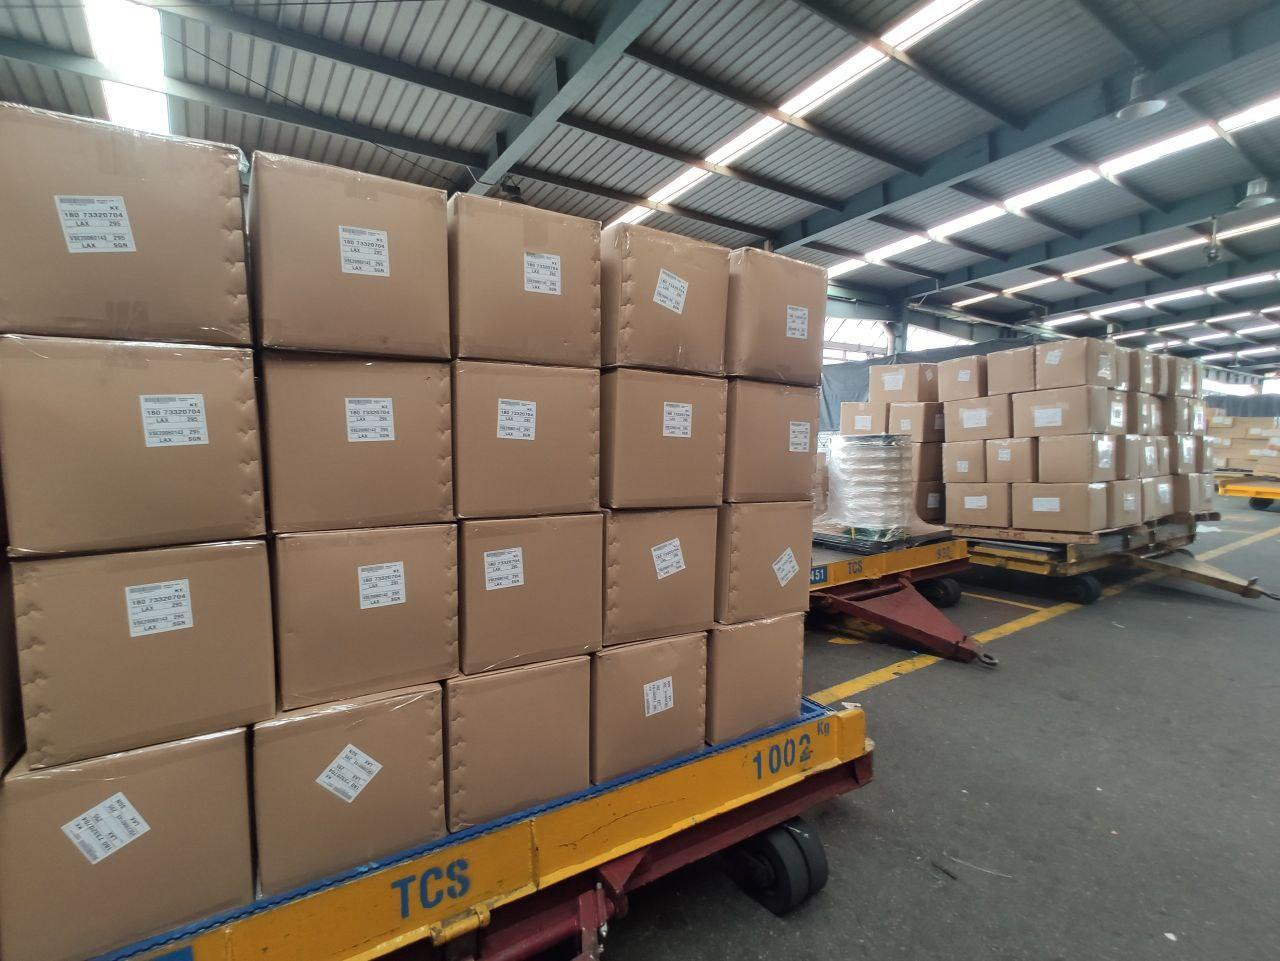 Airport Cargo's packing service